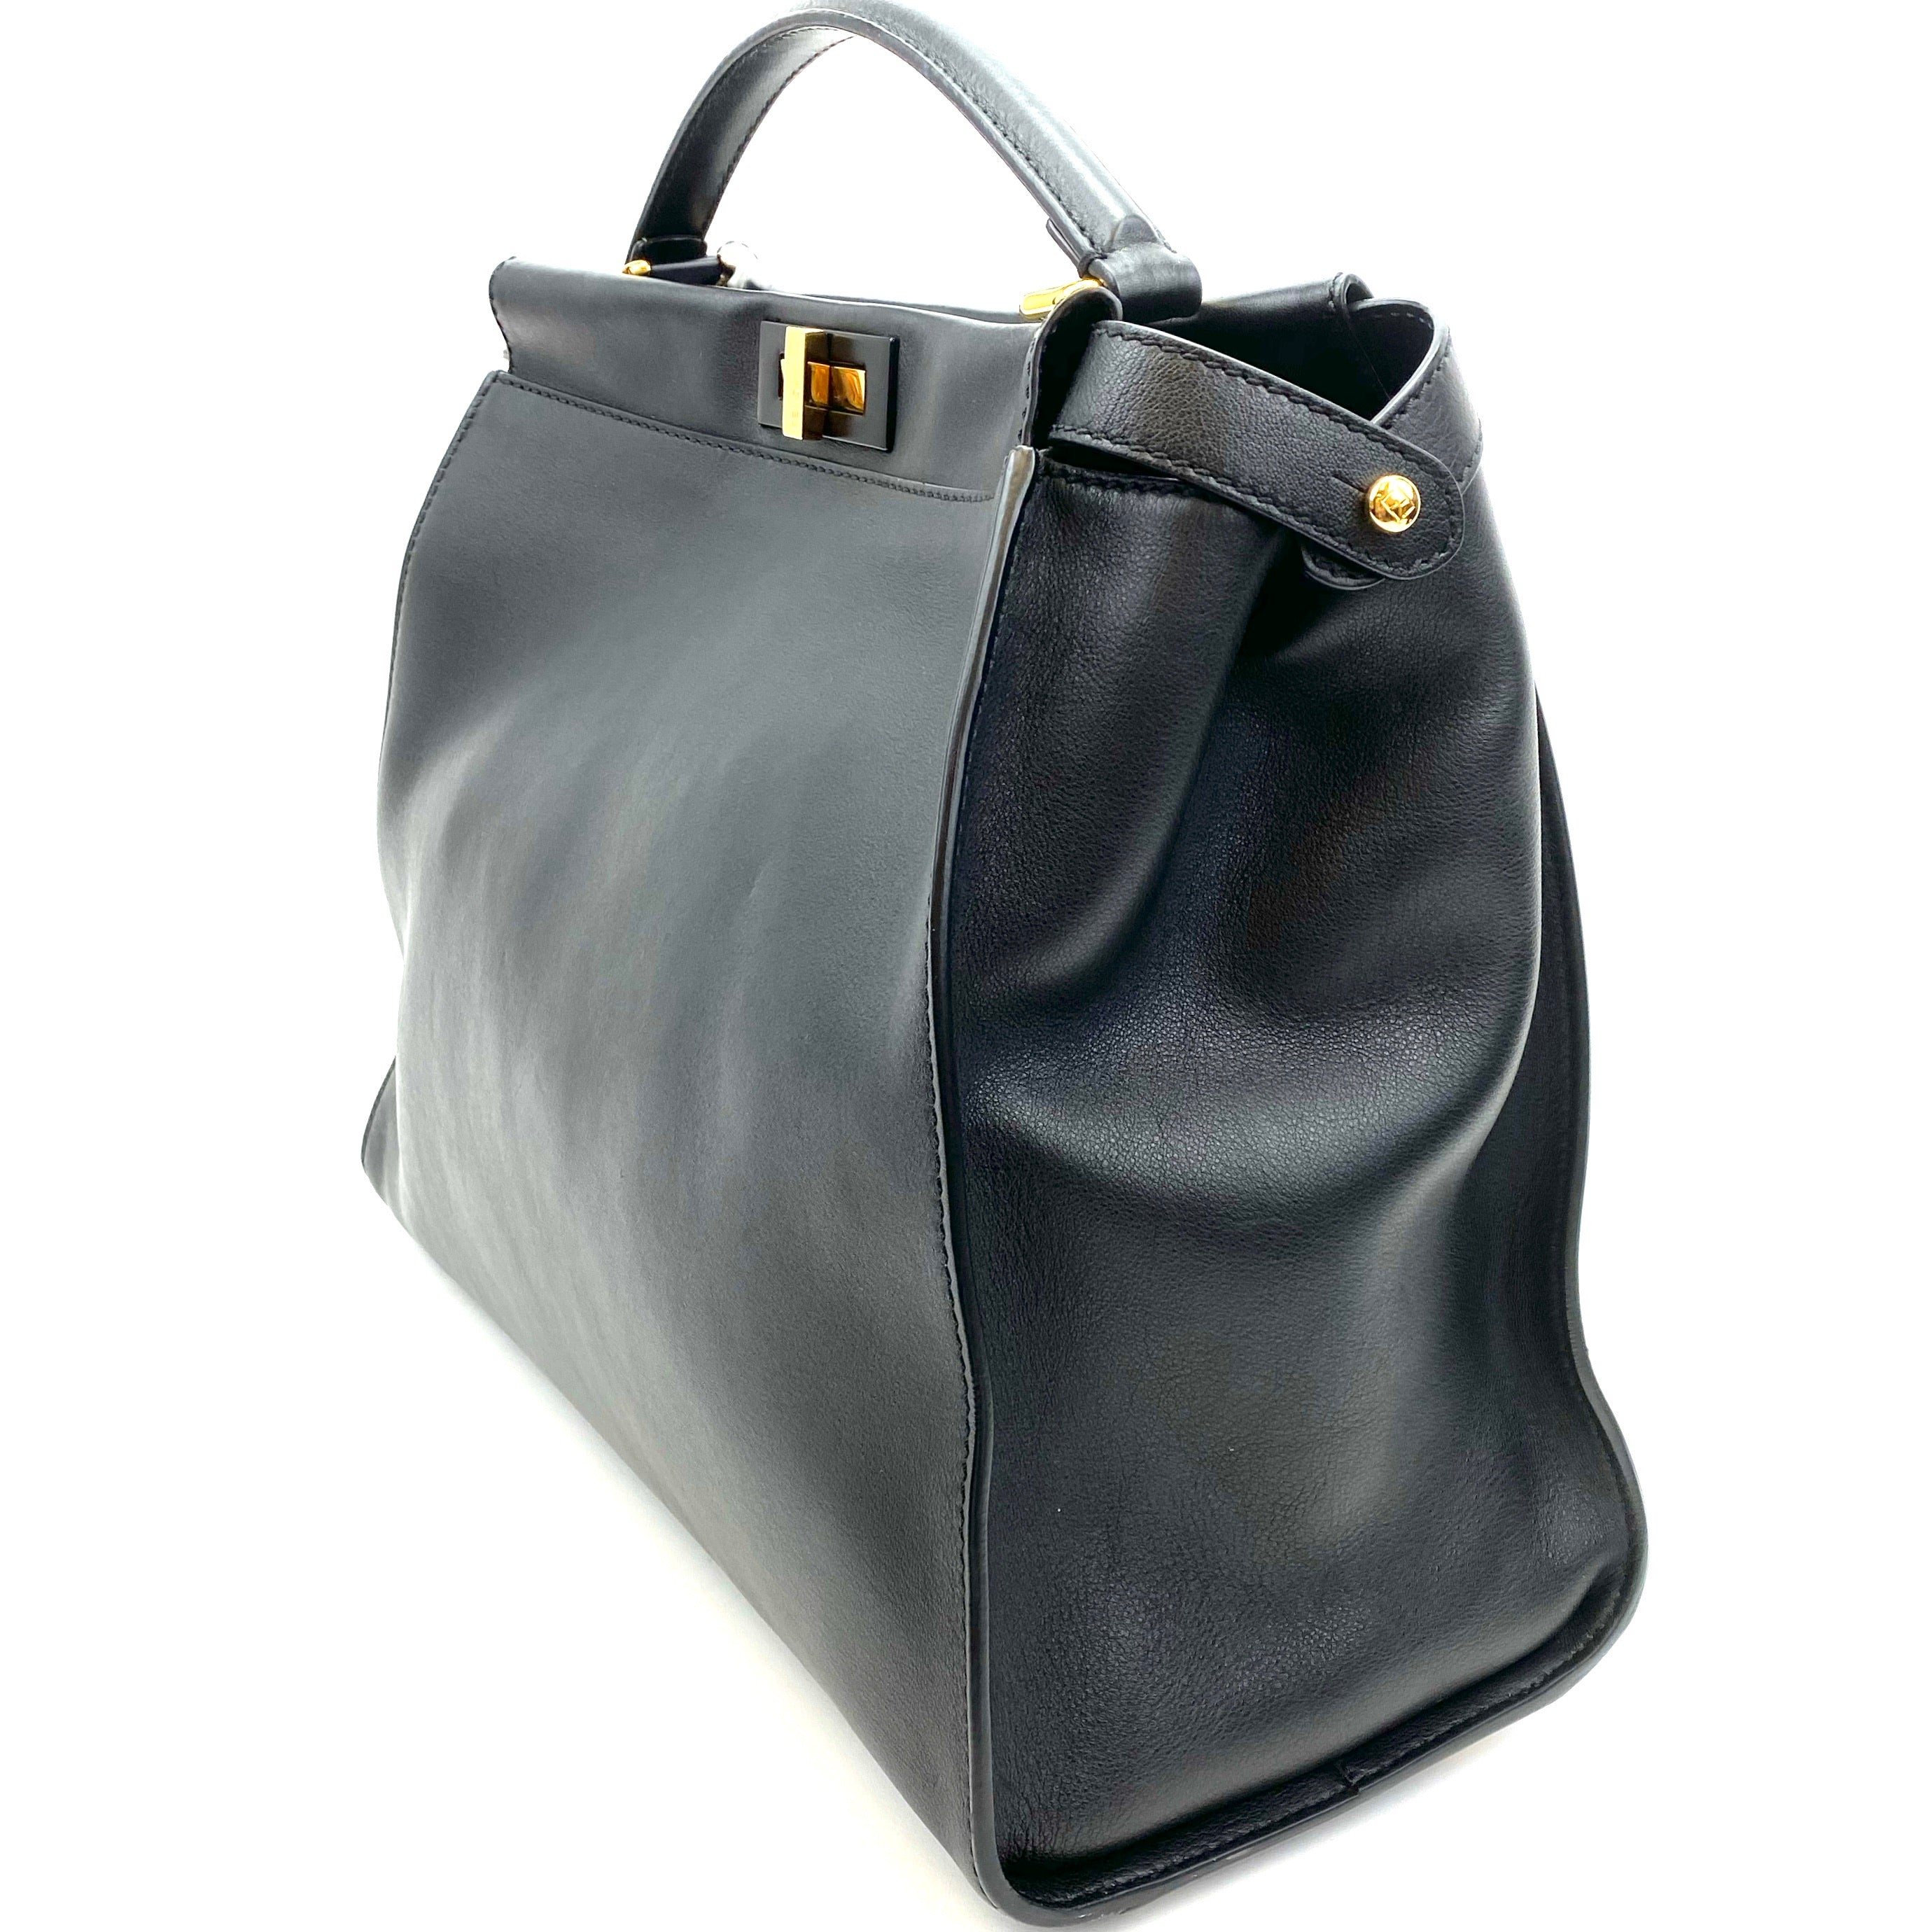 FENDI Leather Peekaboo Tote